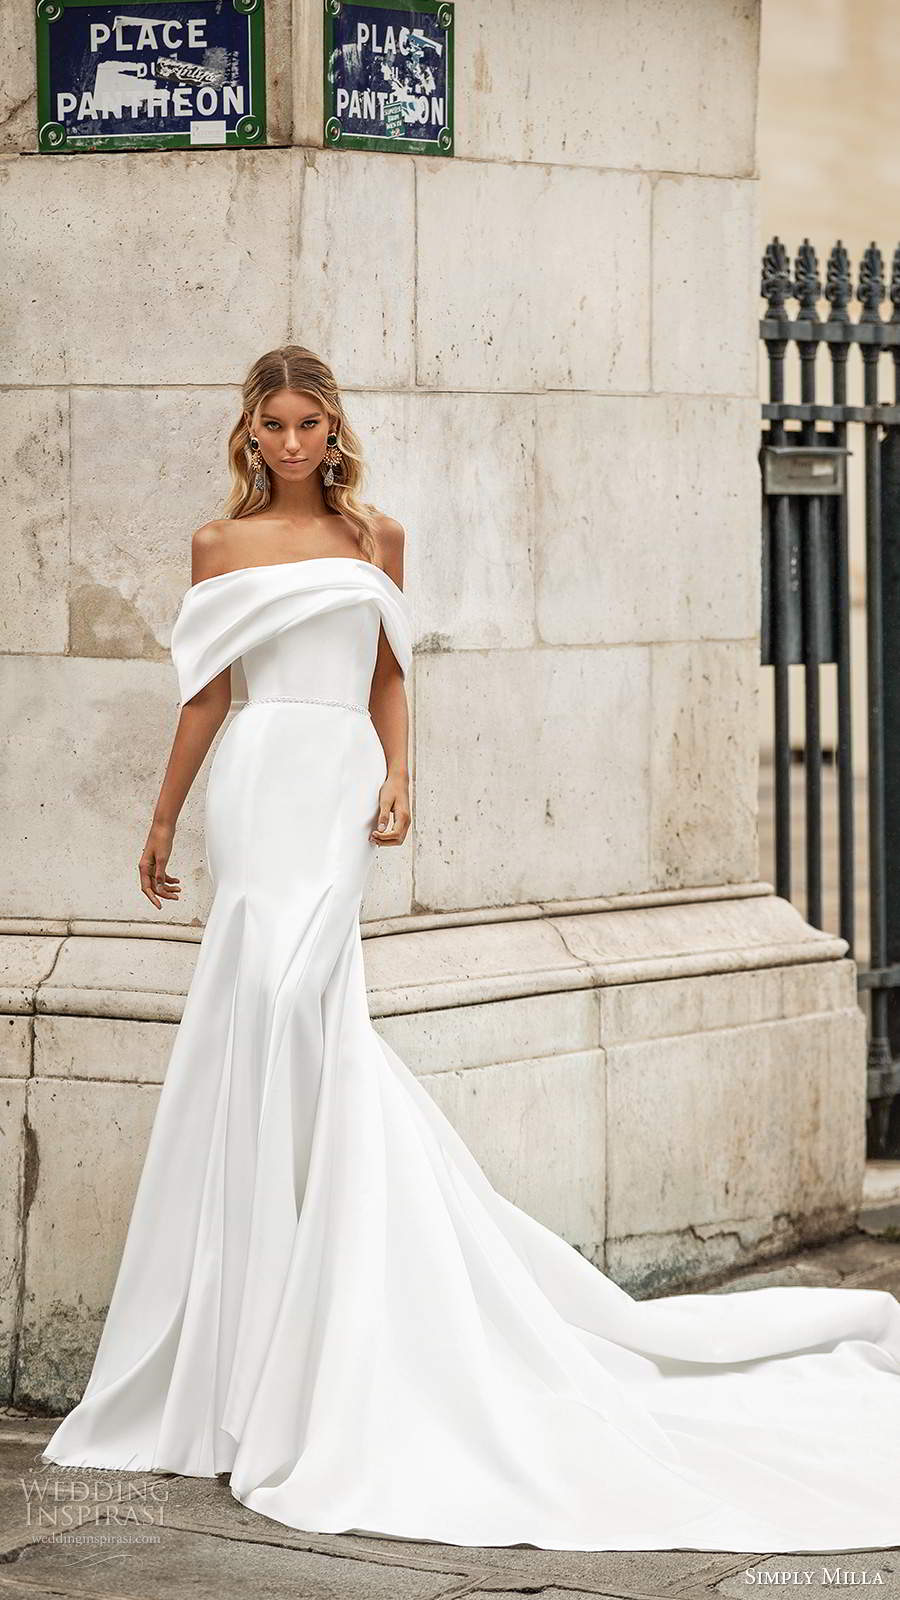 simply milla nova 2020 bridal off shoulder straps straight across foldover neckline clean minimally embellished fit flare mermaid wedding dress chapel train (17) mv